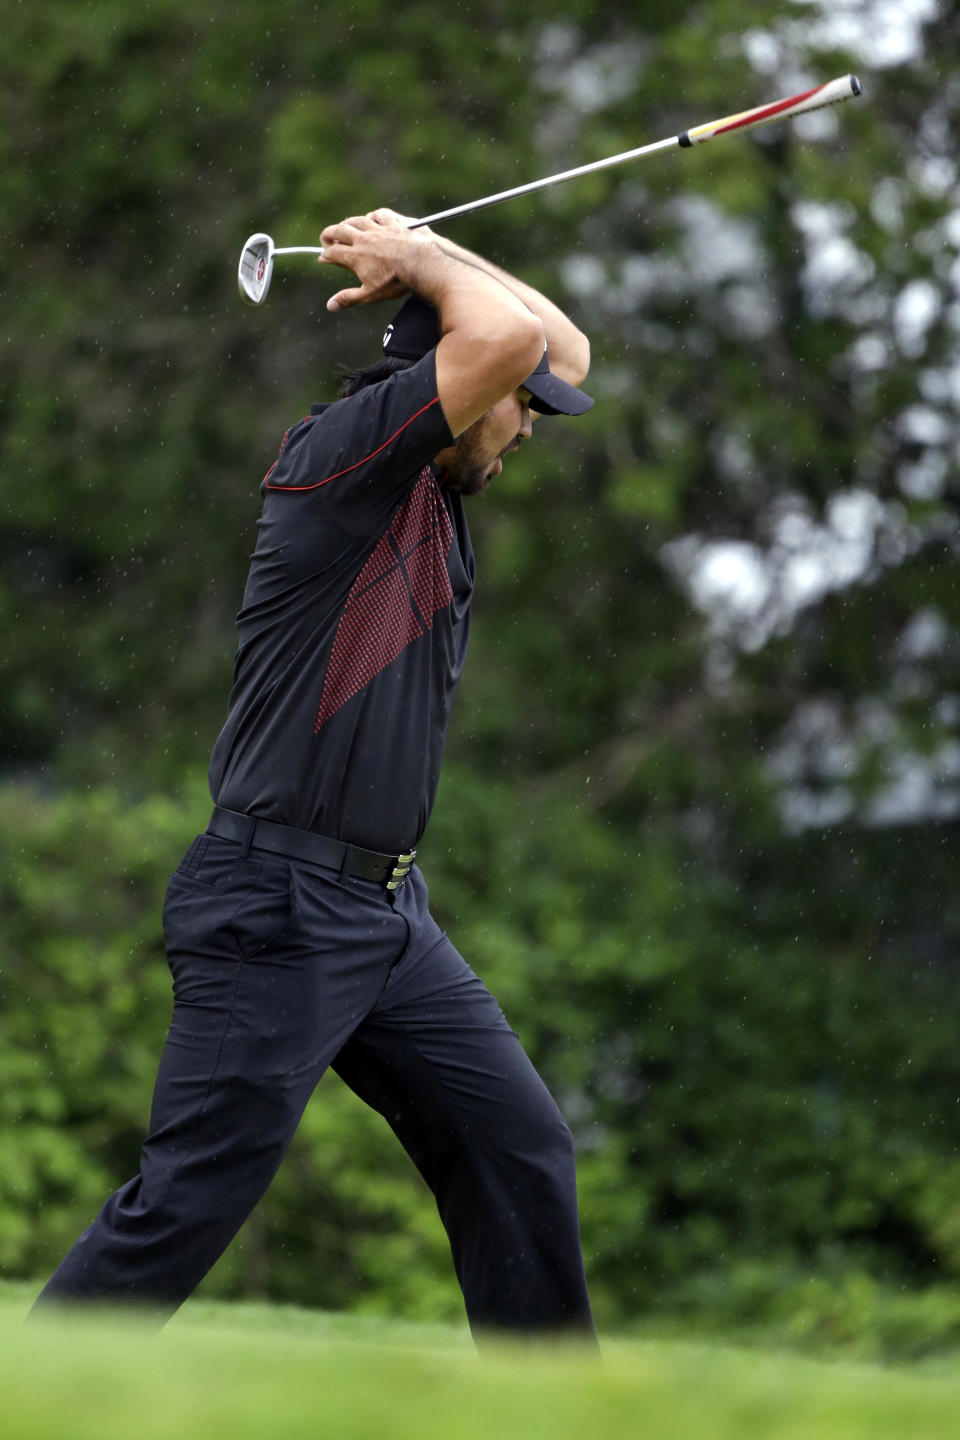 Jason Day, of Australia, reacts after a putt on the 15th hole during the fourth round of the U.S. Open golf tournament at Merion Golf Club, Sunday, June 16, 2013, in Ardmore, Pa. (AP Photo/Darron Cummings)